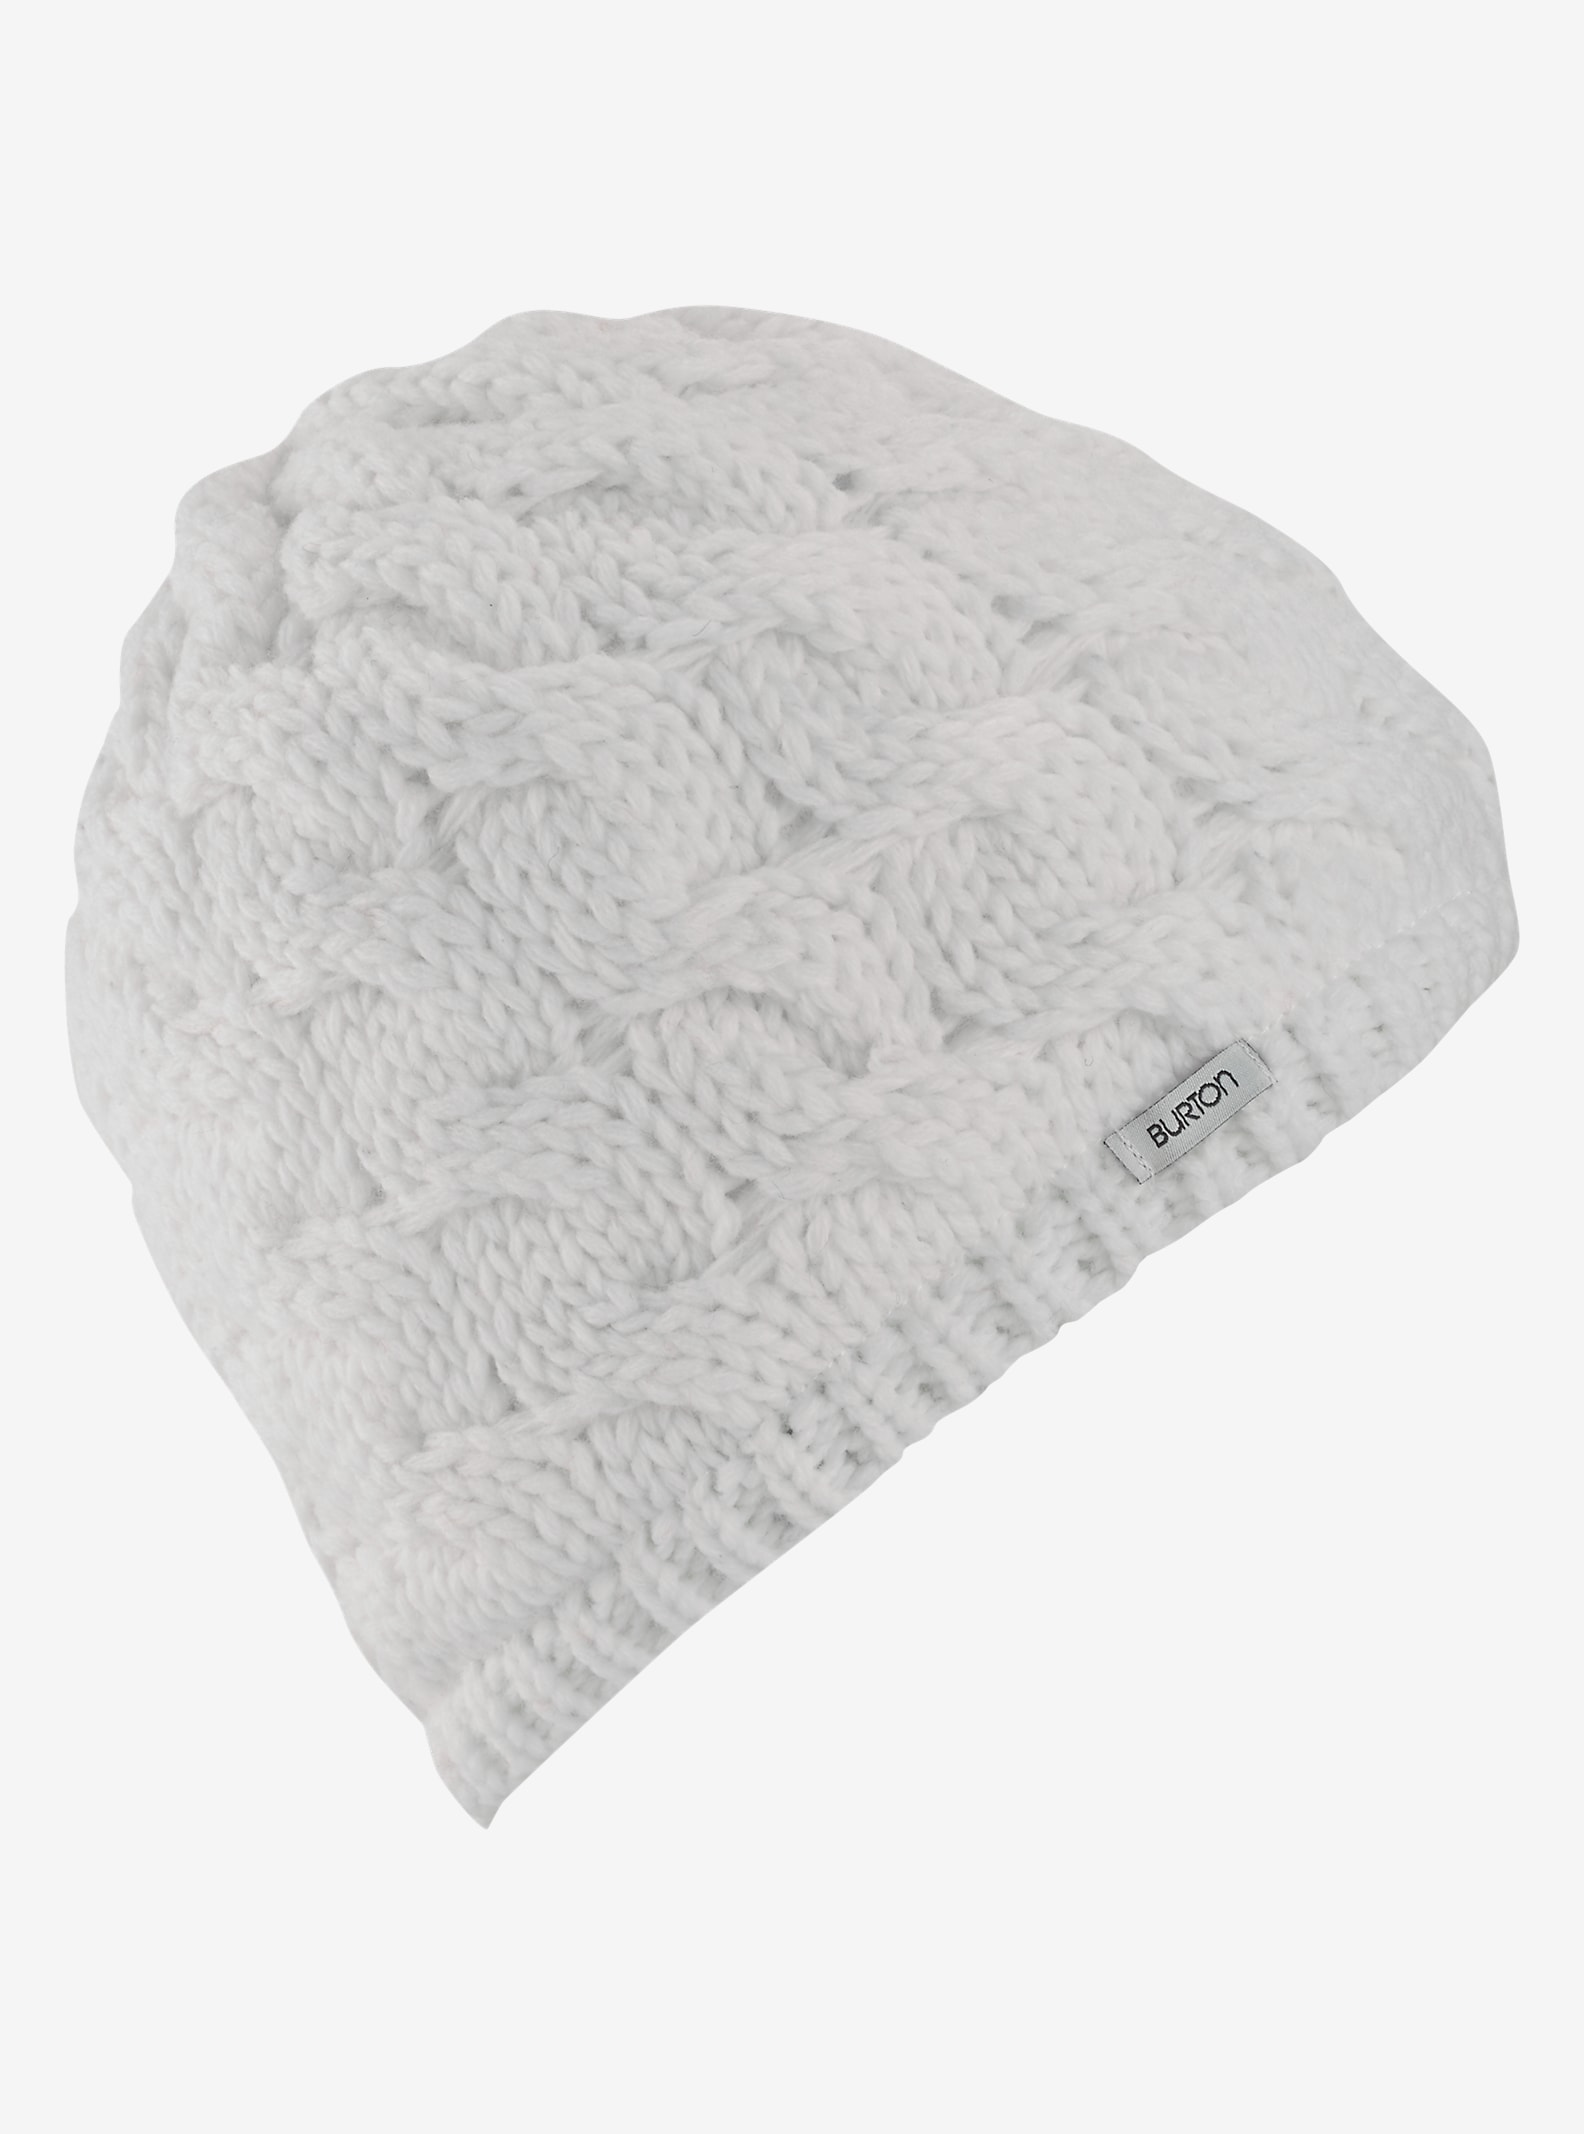 Burton Birdie Beanie shown in Stout White